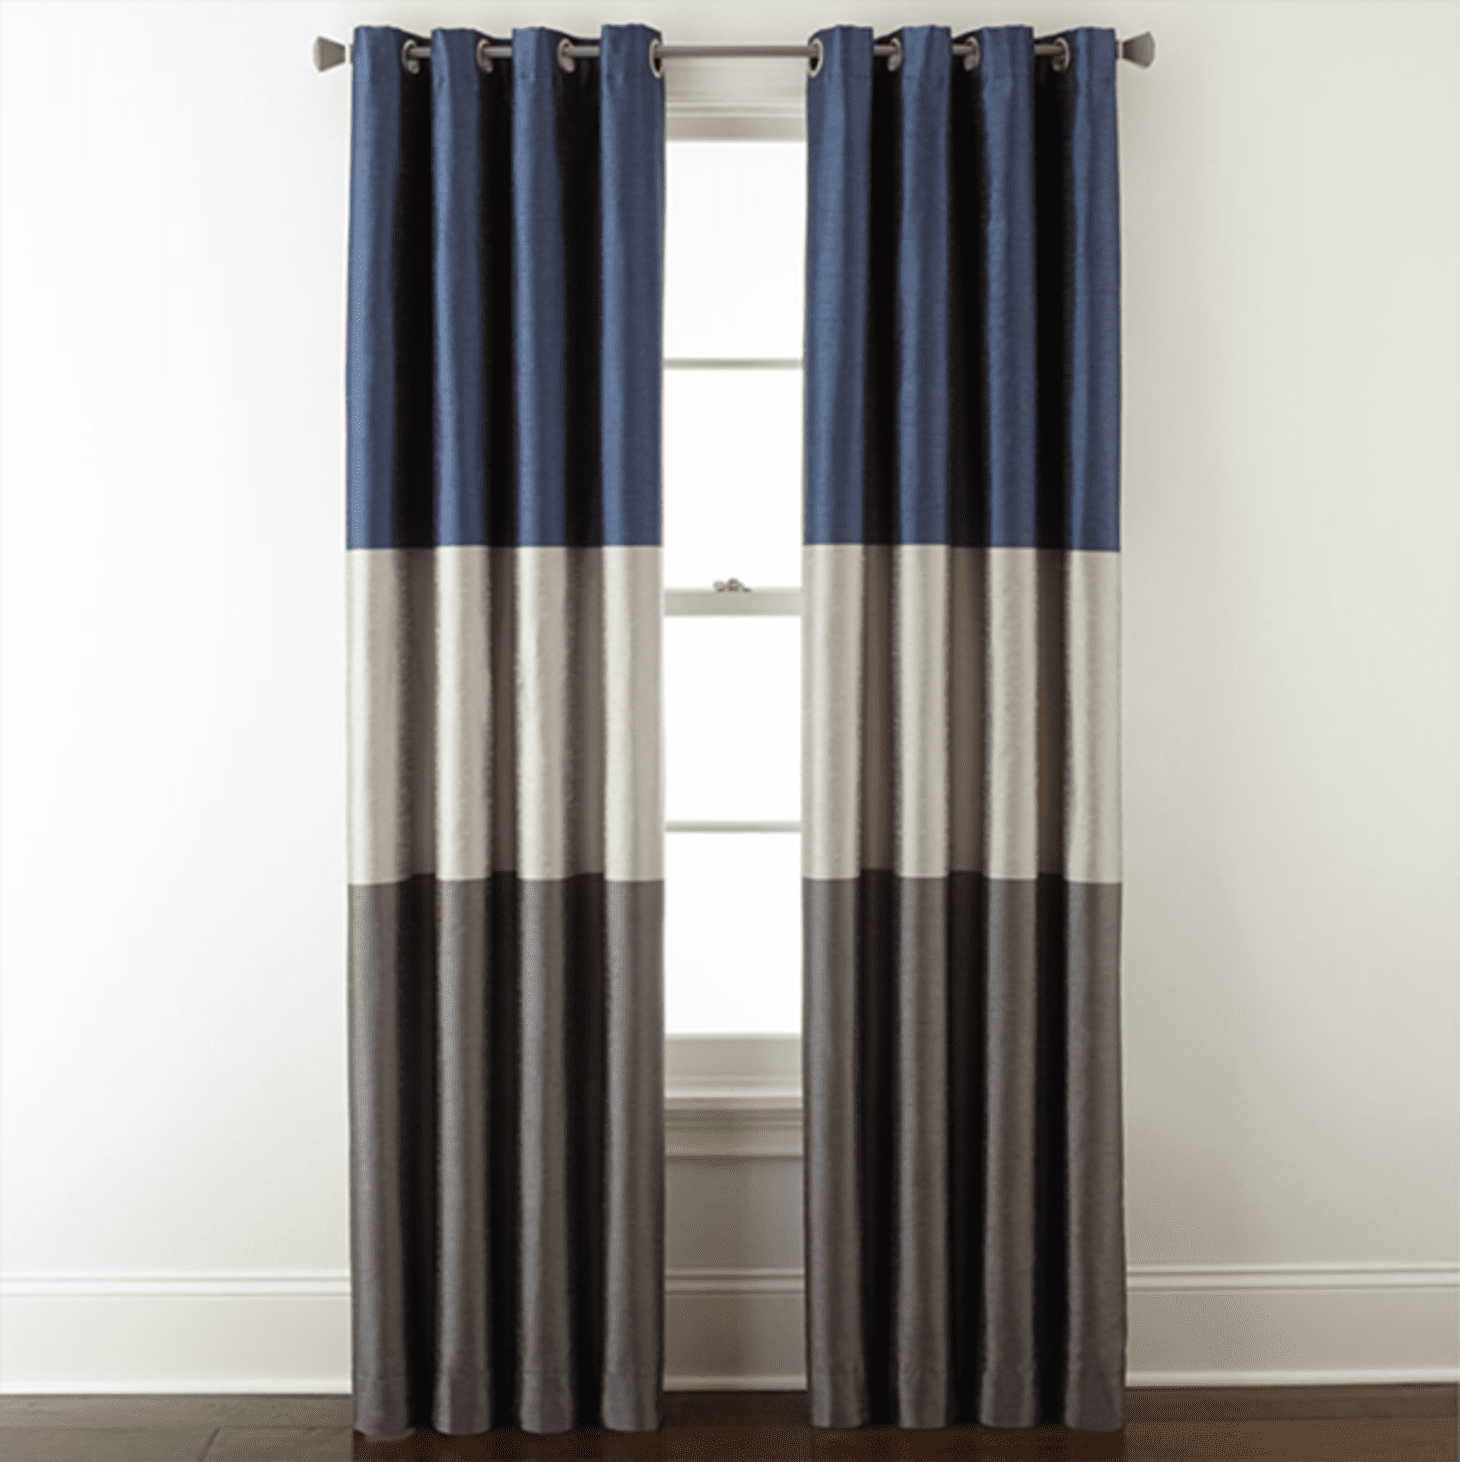 Best Insulated Blackout Curtains | Apartment Therapy Inside Rowley Birds Room Darkening Curtain Panel Pairs (View 15 of 20)